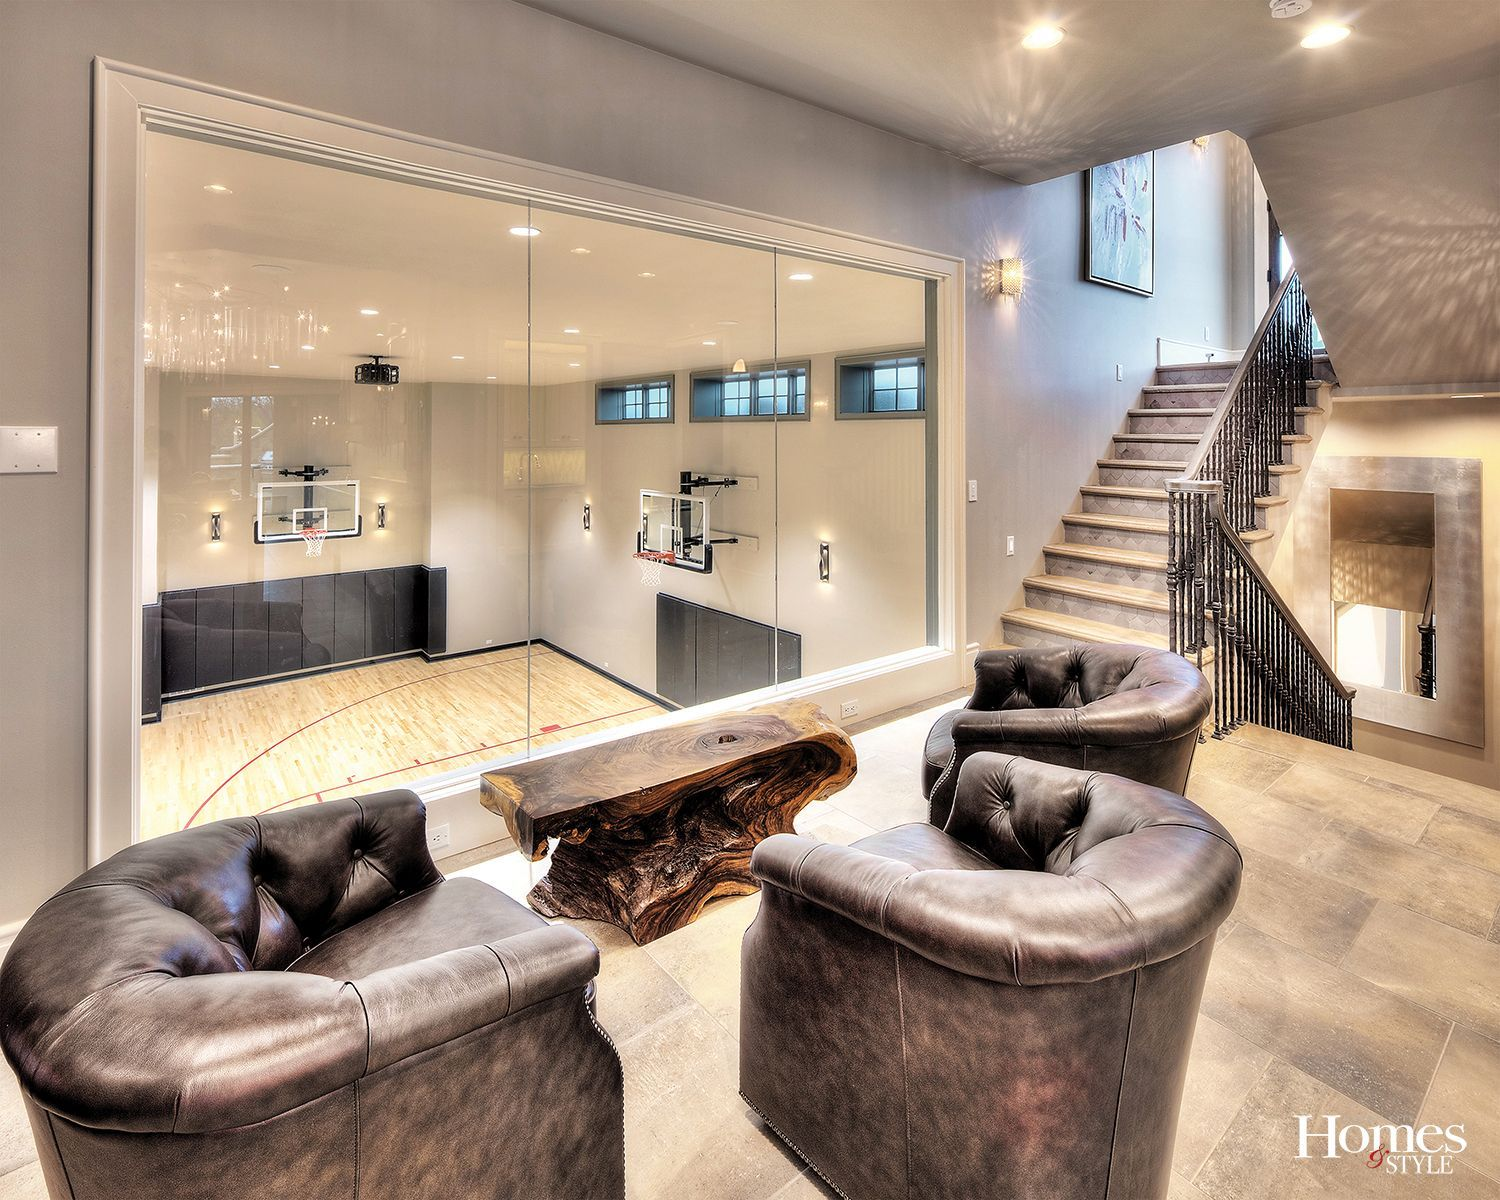 This home is full of so much more than meets the eye consider for